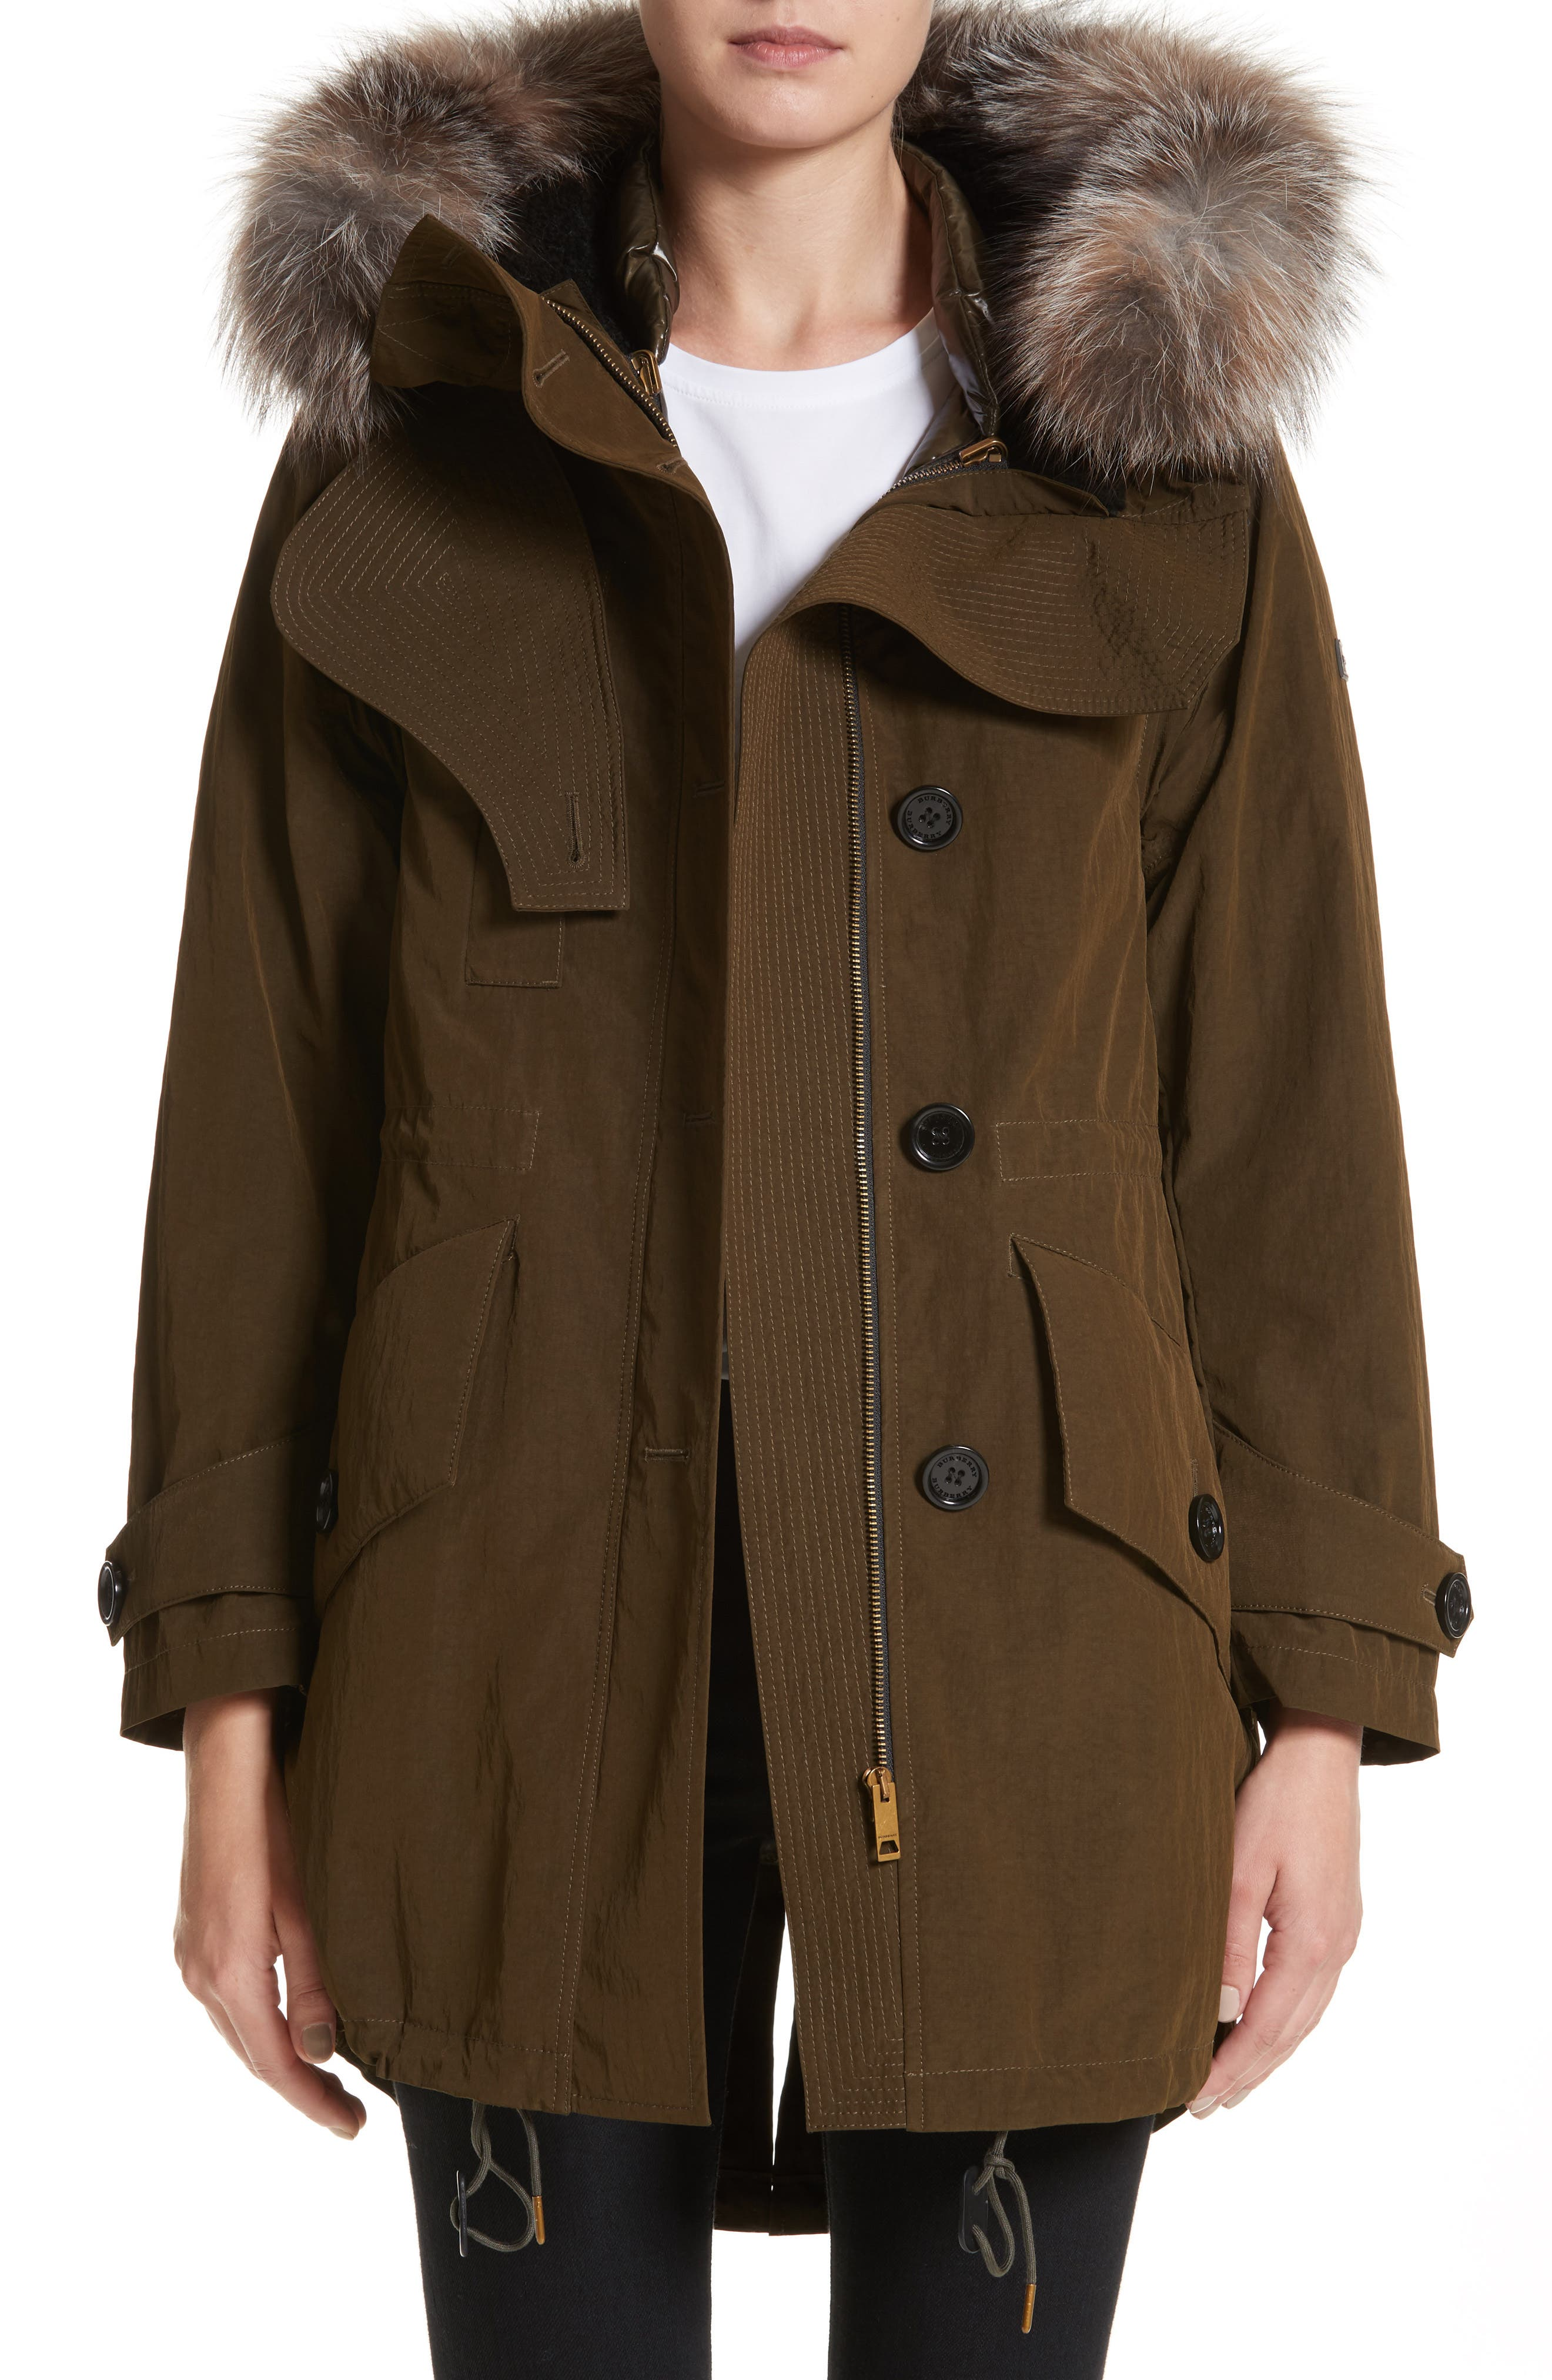 Ramsford 3-in-1 Hooded Parka with Genuine Fox Fur & Genuine Shearling Trim,                             Main thumbnail 1, color,                             Dark Olive